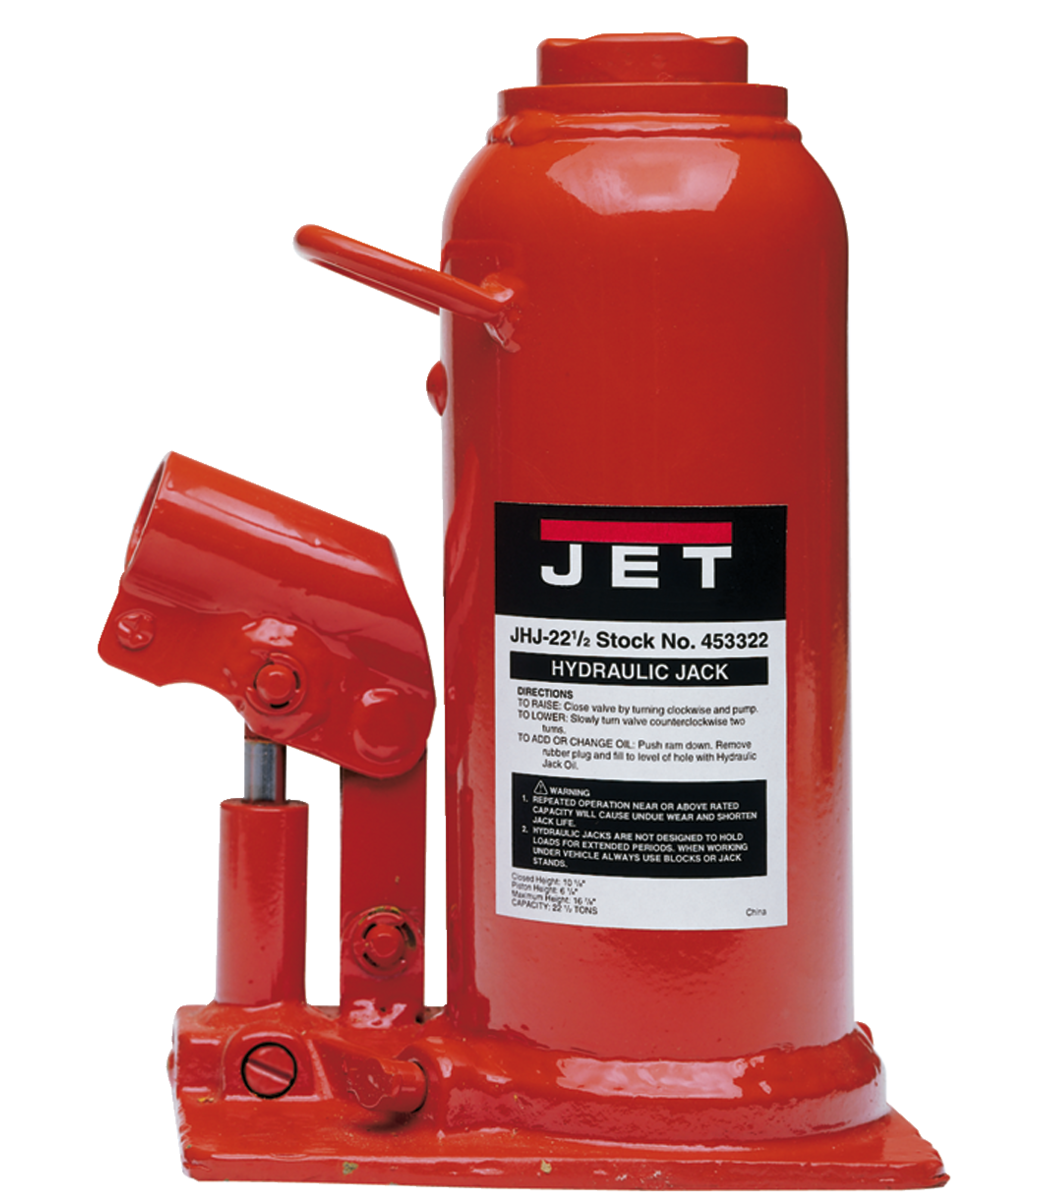 JHJ-22-1/2, 22-1/2-Ton Hydraulic Bottle Jack